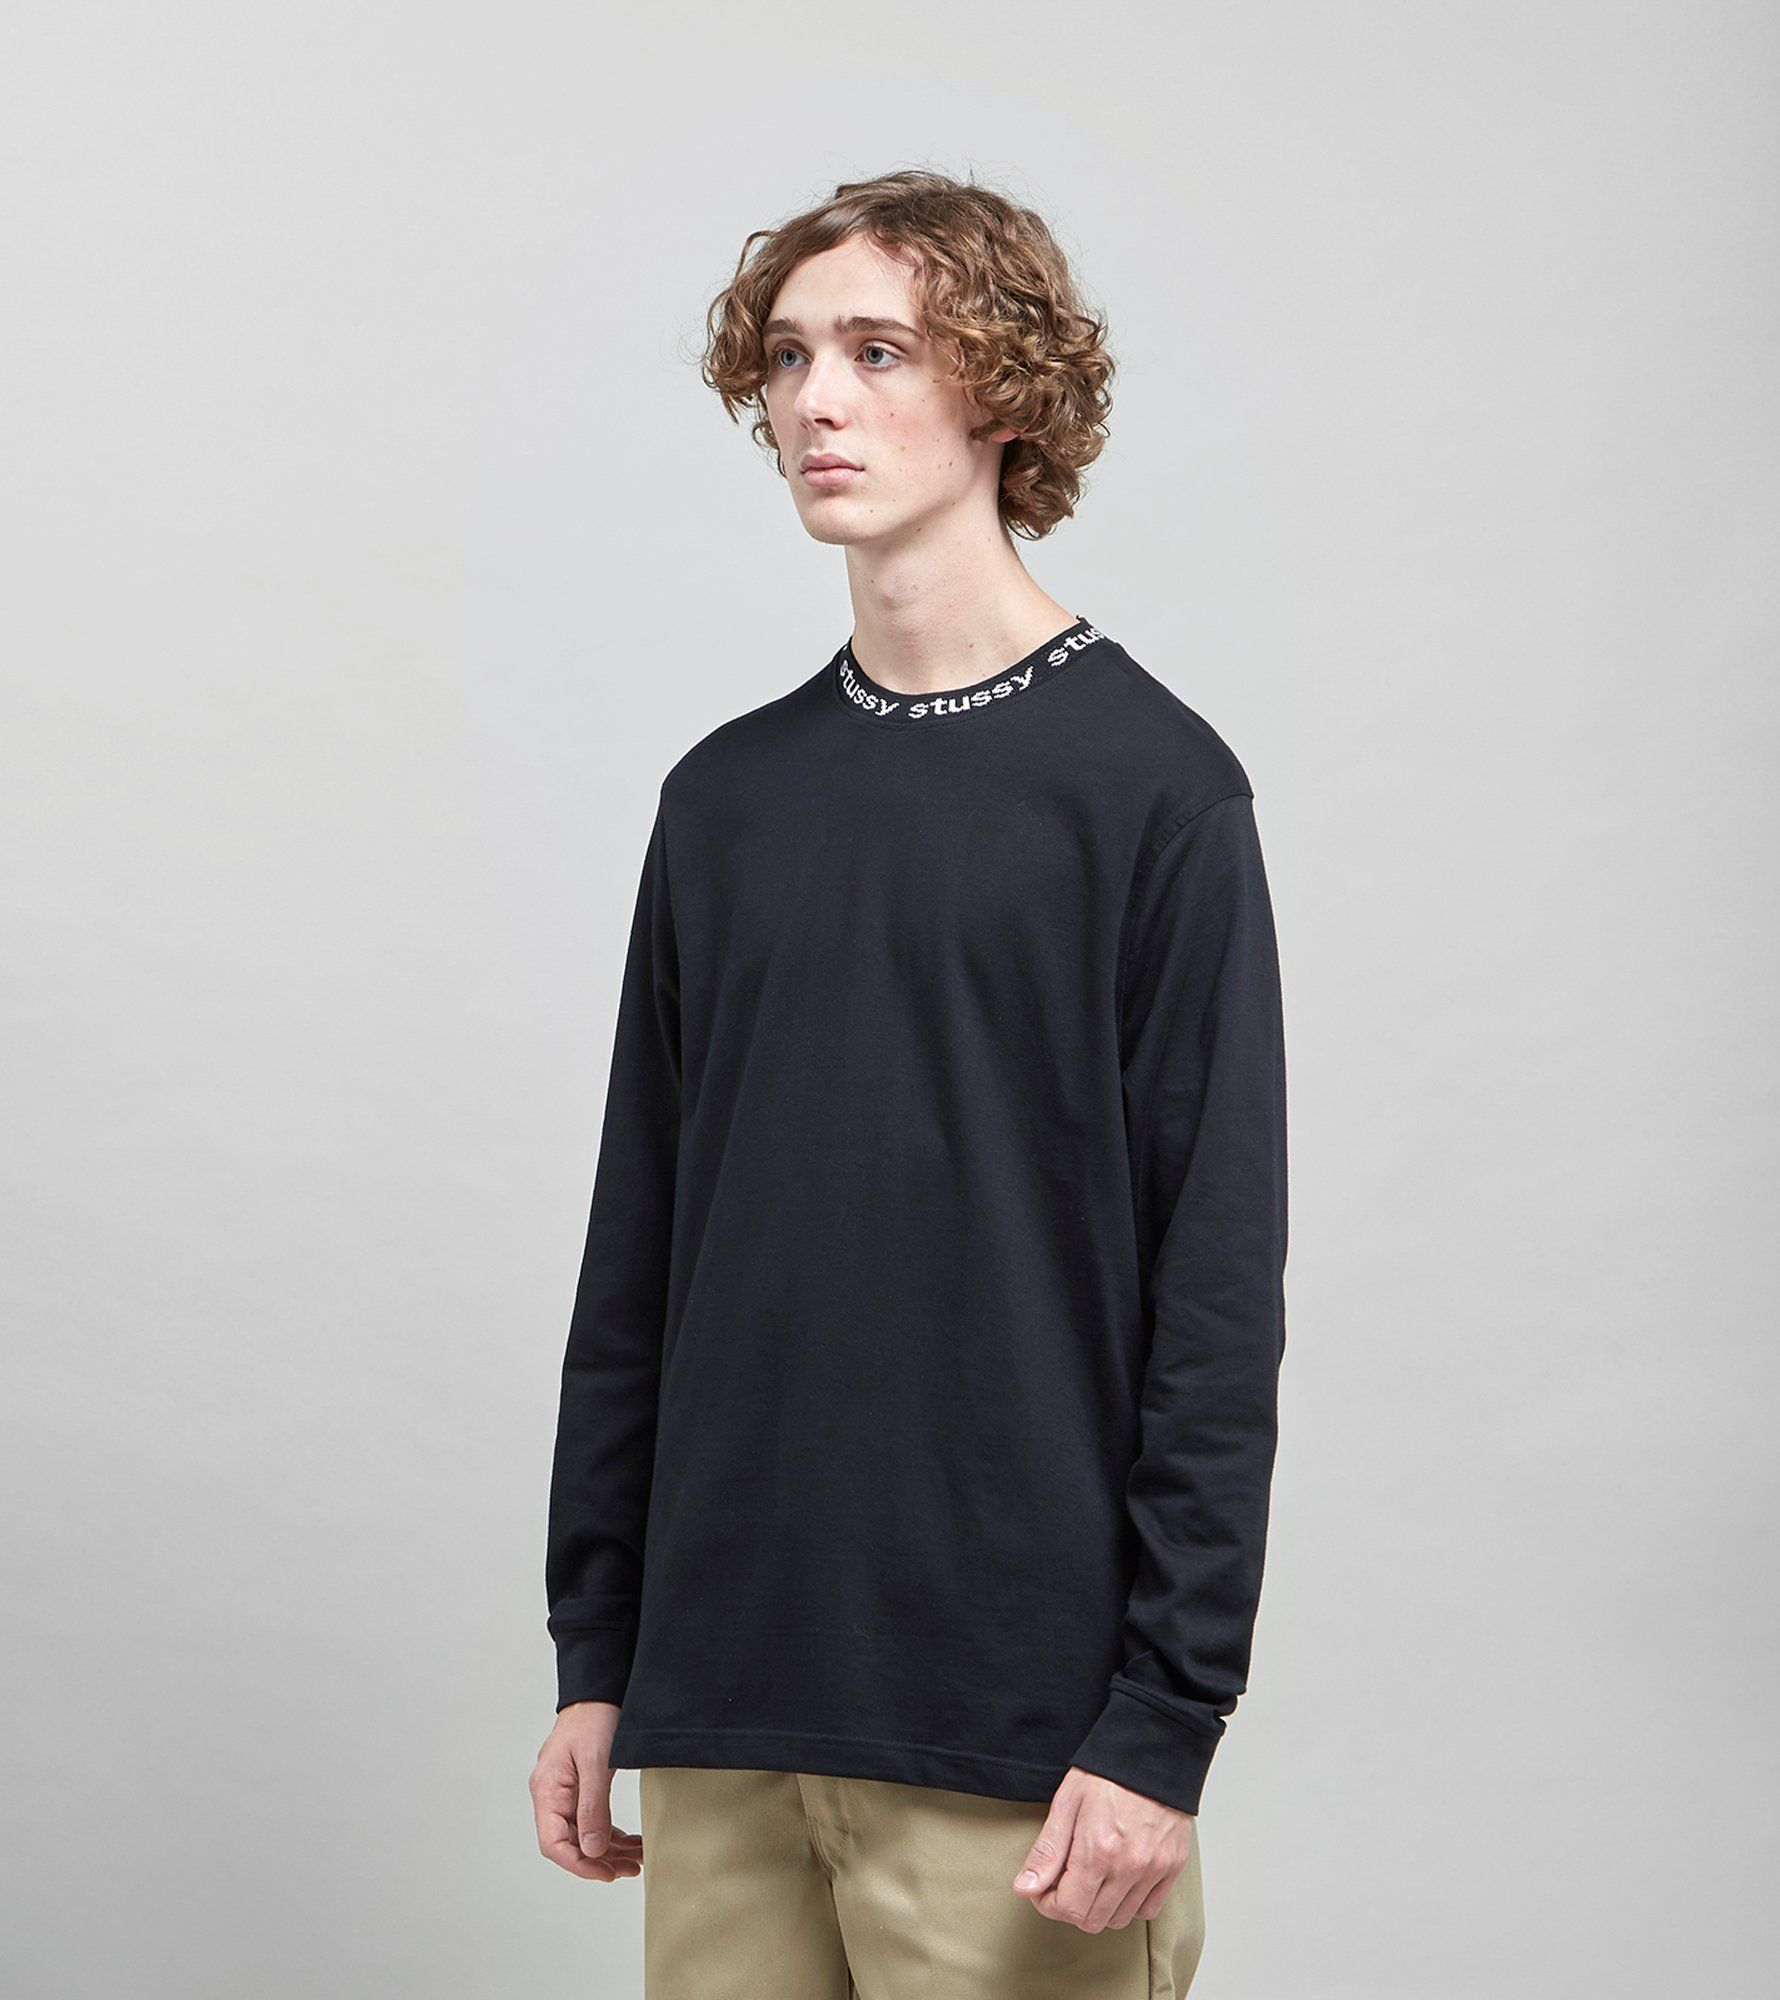 Stussy Owen Long Sleeved Crew Sweatshirt